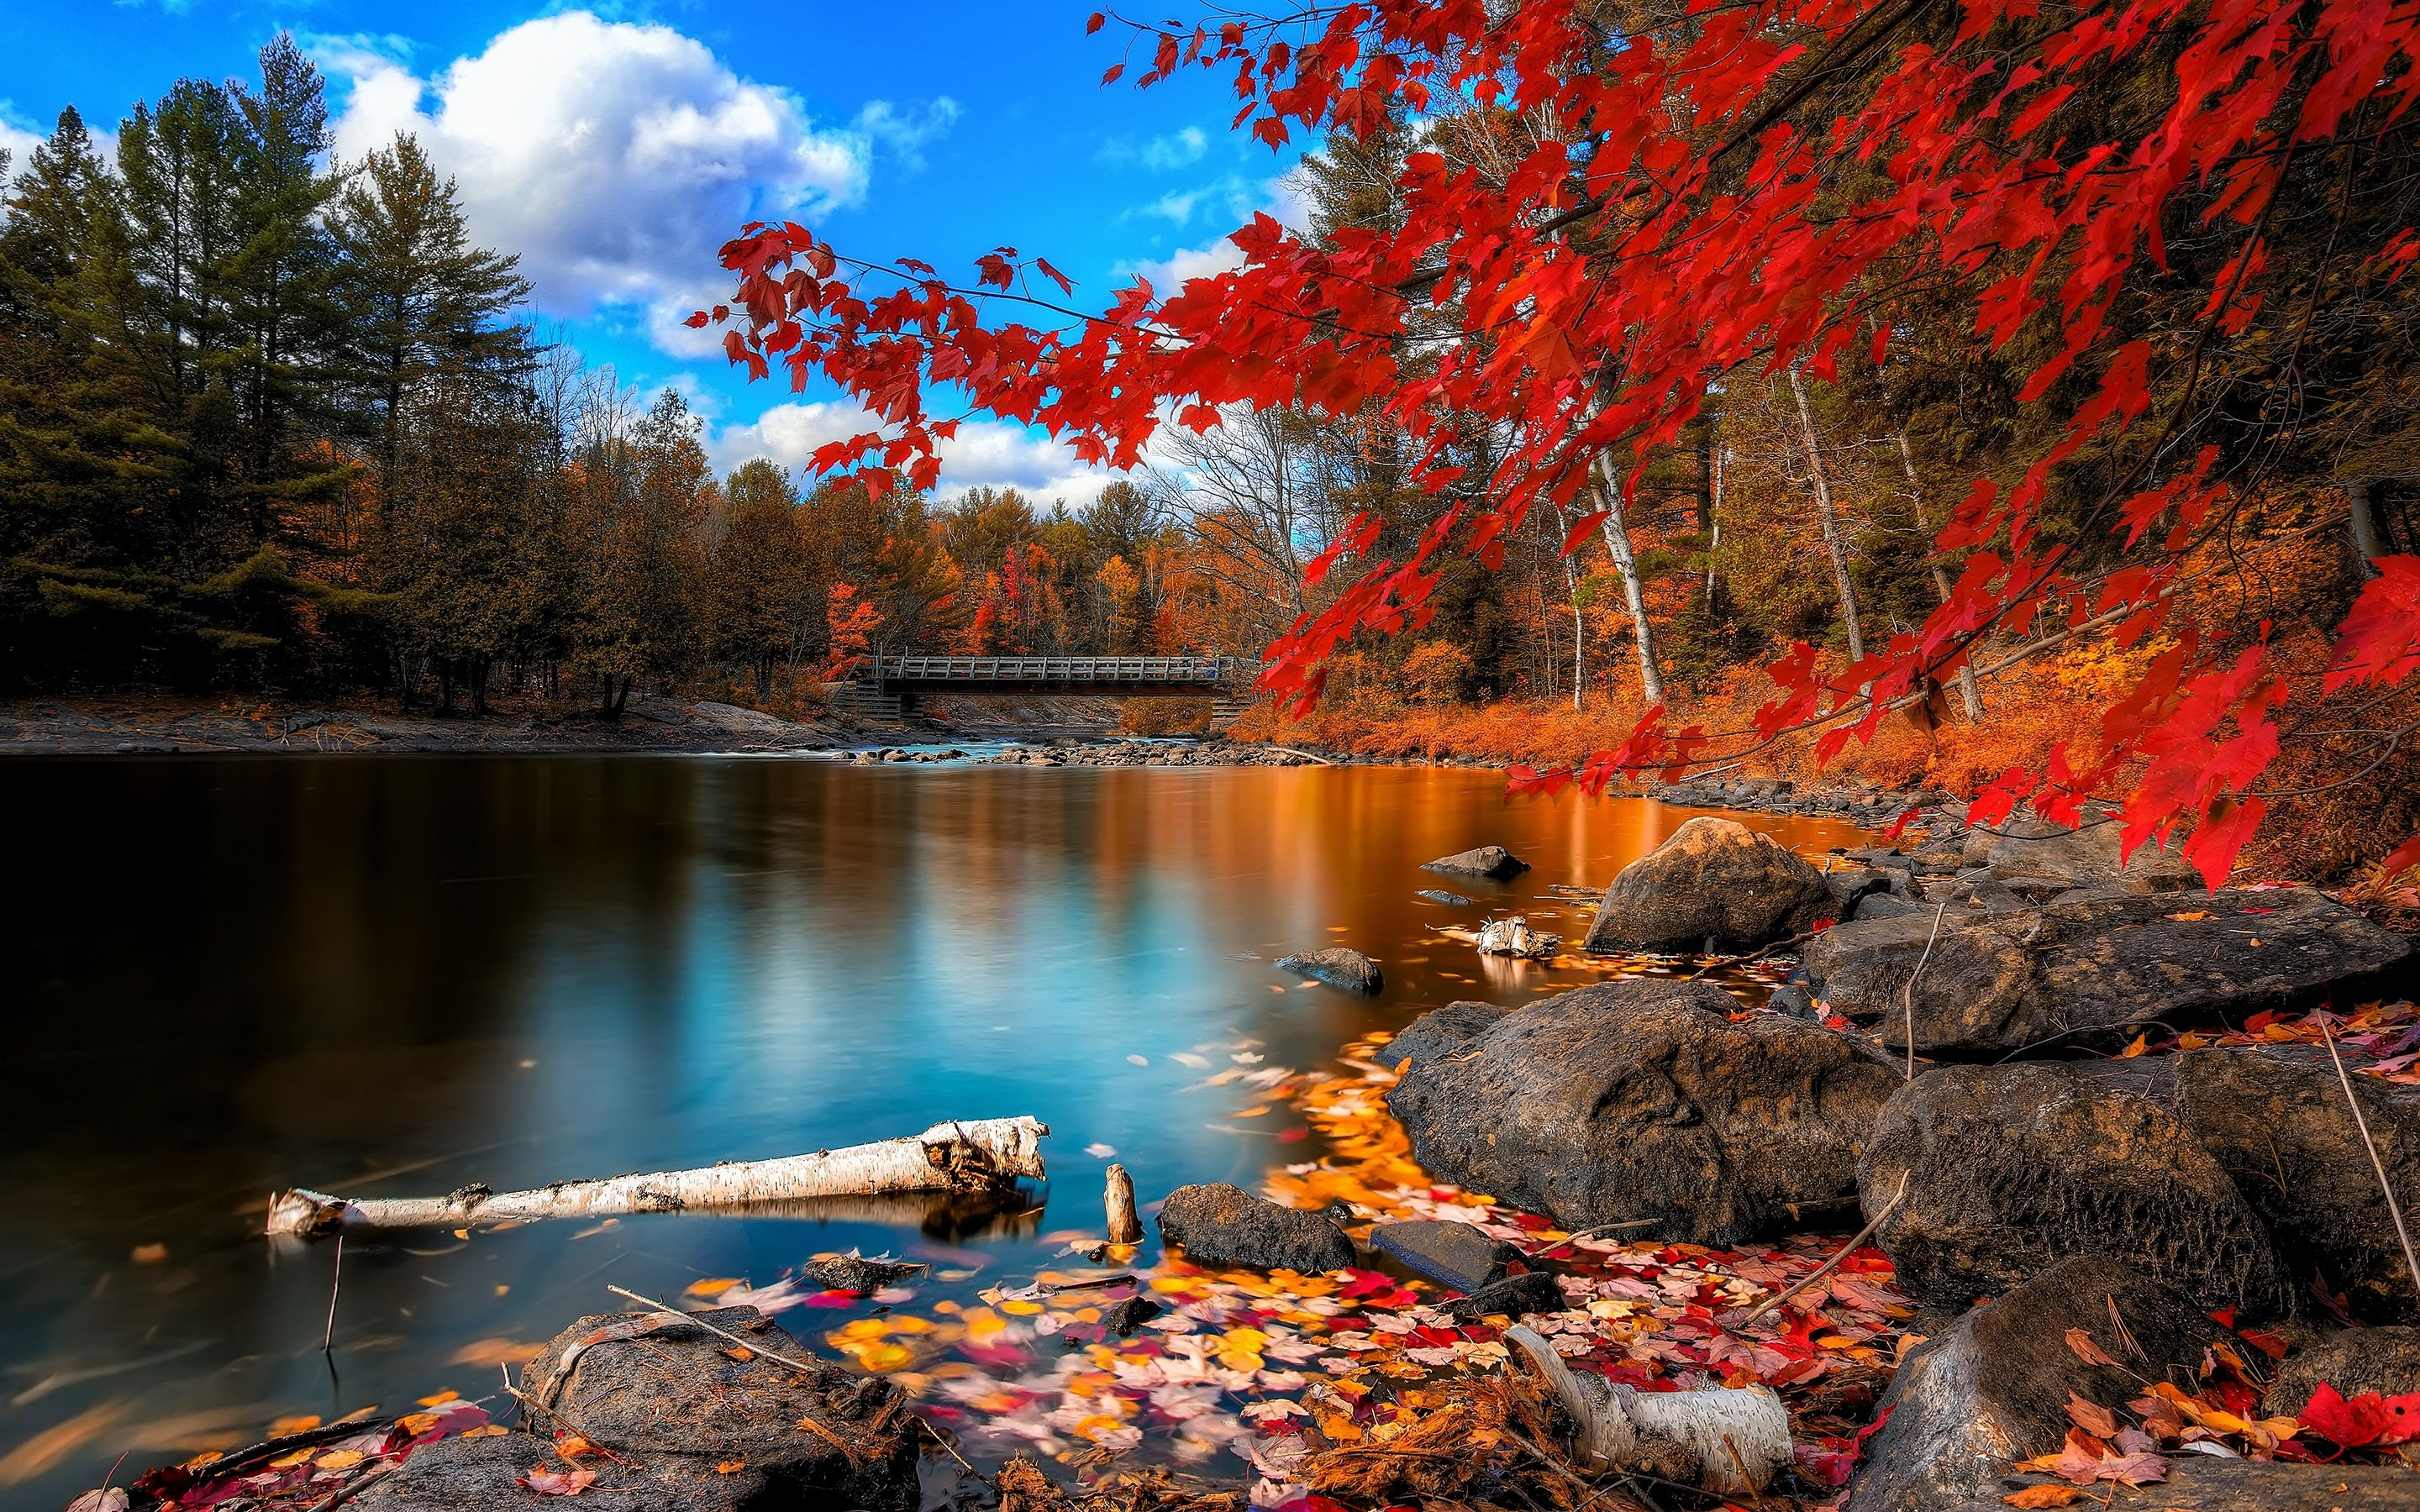 Fall foliage wallpapers hd wallpapers i may dislike fall but fall foliage wallpapers hd wallpapers voltagebd Images